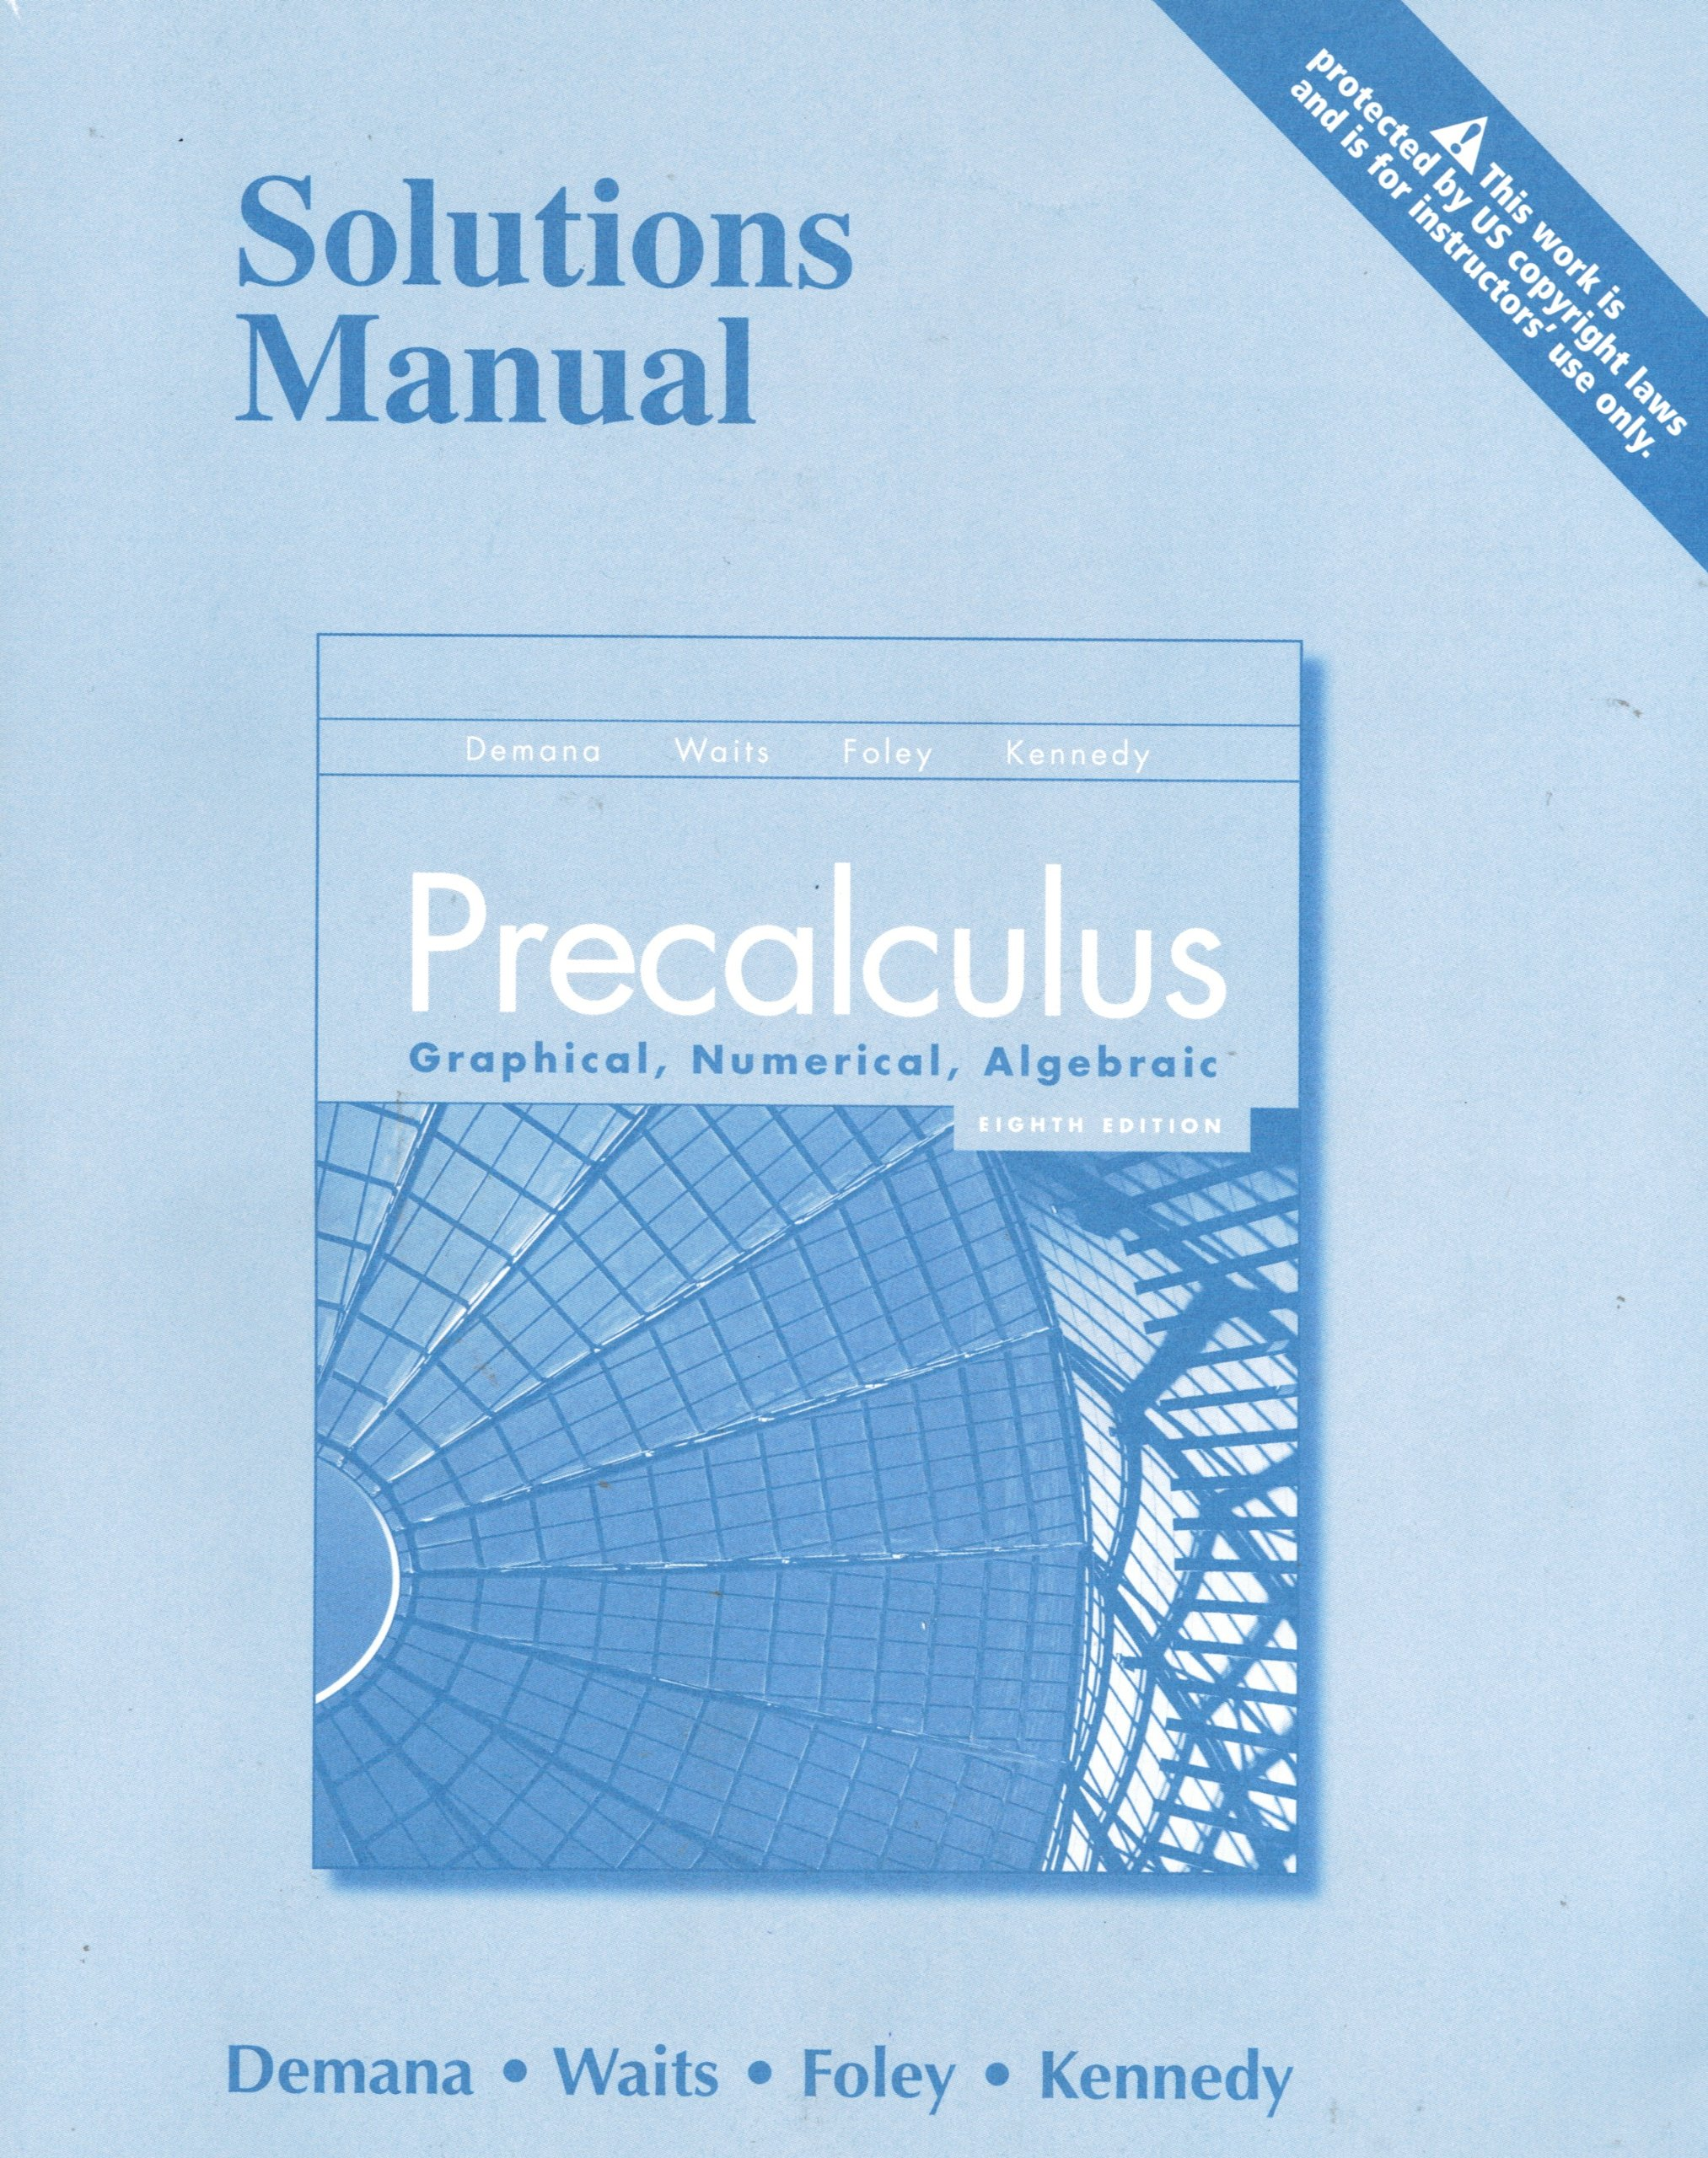 Precalculus: Graphical, Numerical, Algebraic Solutions Manual: Franklin D.  Demana, Bert K. Waits, Gregory D. Foley, Daniel Kennedy: 9780131376410: ...